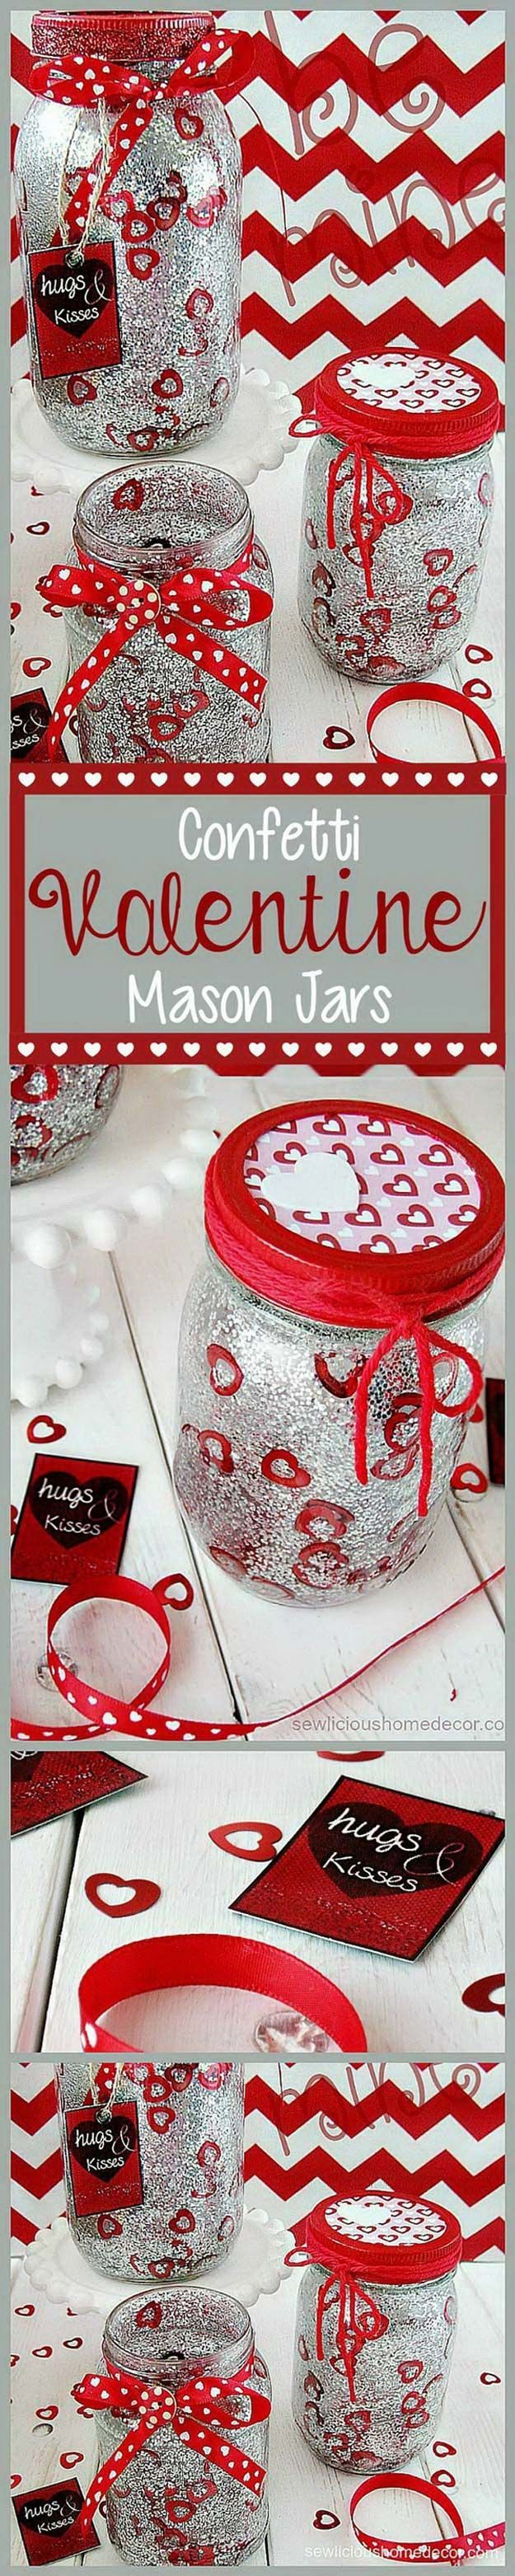 Best Mason Jar Valentine Crafts - Red Valentine Jars with Glitter and Confetti - Cute Mason Jar Valentines Day Gifts and Crafts | Easy DIY Ideas for Valentines Day for Homemade Gift Giving and Room Decor | Creative Home Decor and Craft Projects for Teens, Teenagers, Kids and Adults http://diyprojectsforteens.com/mason-jar-valentine-crafts